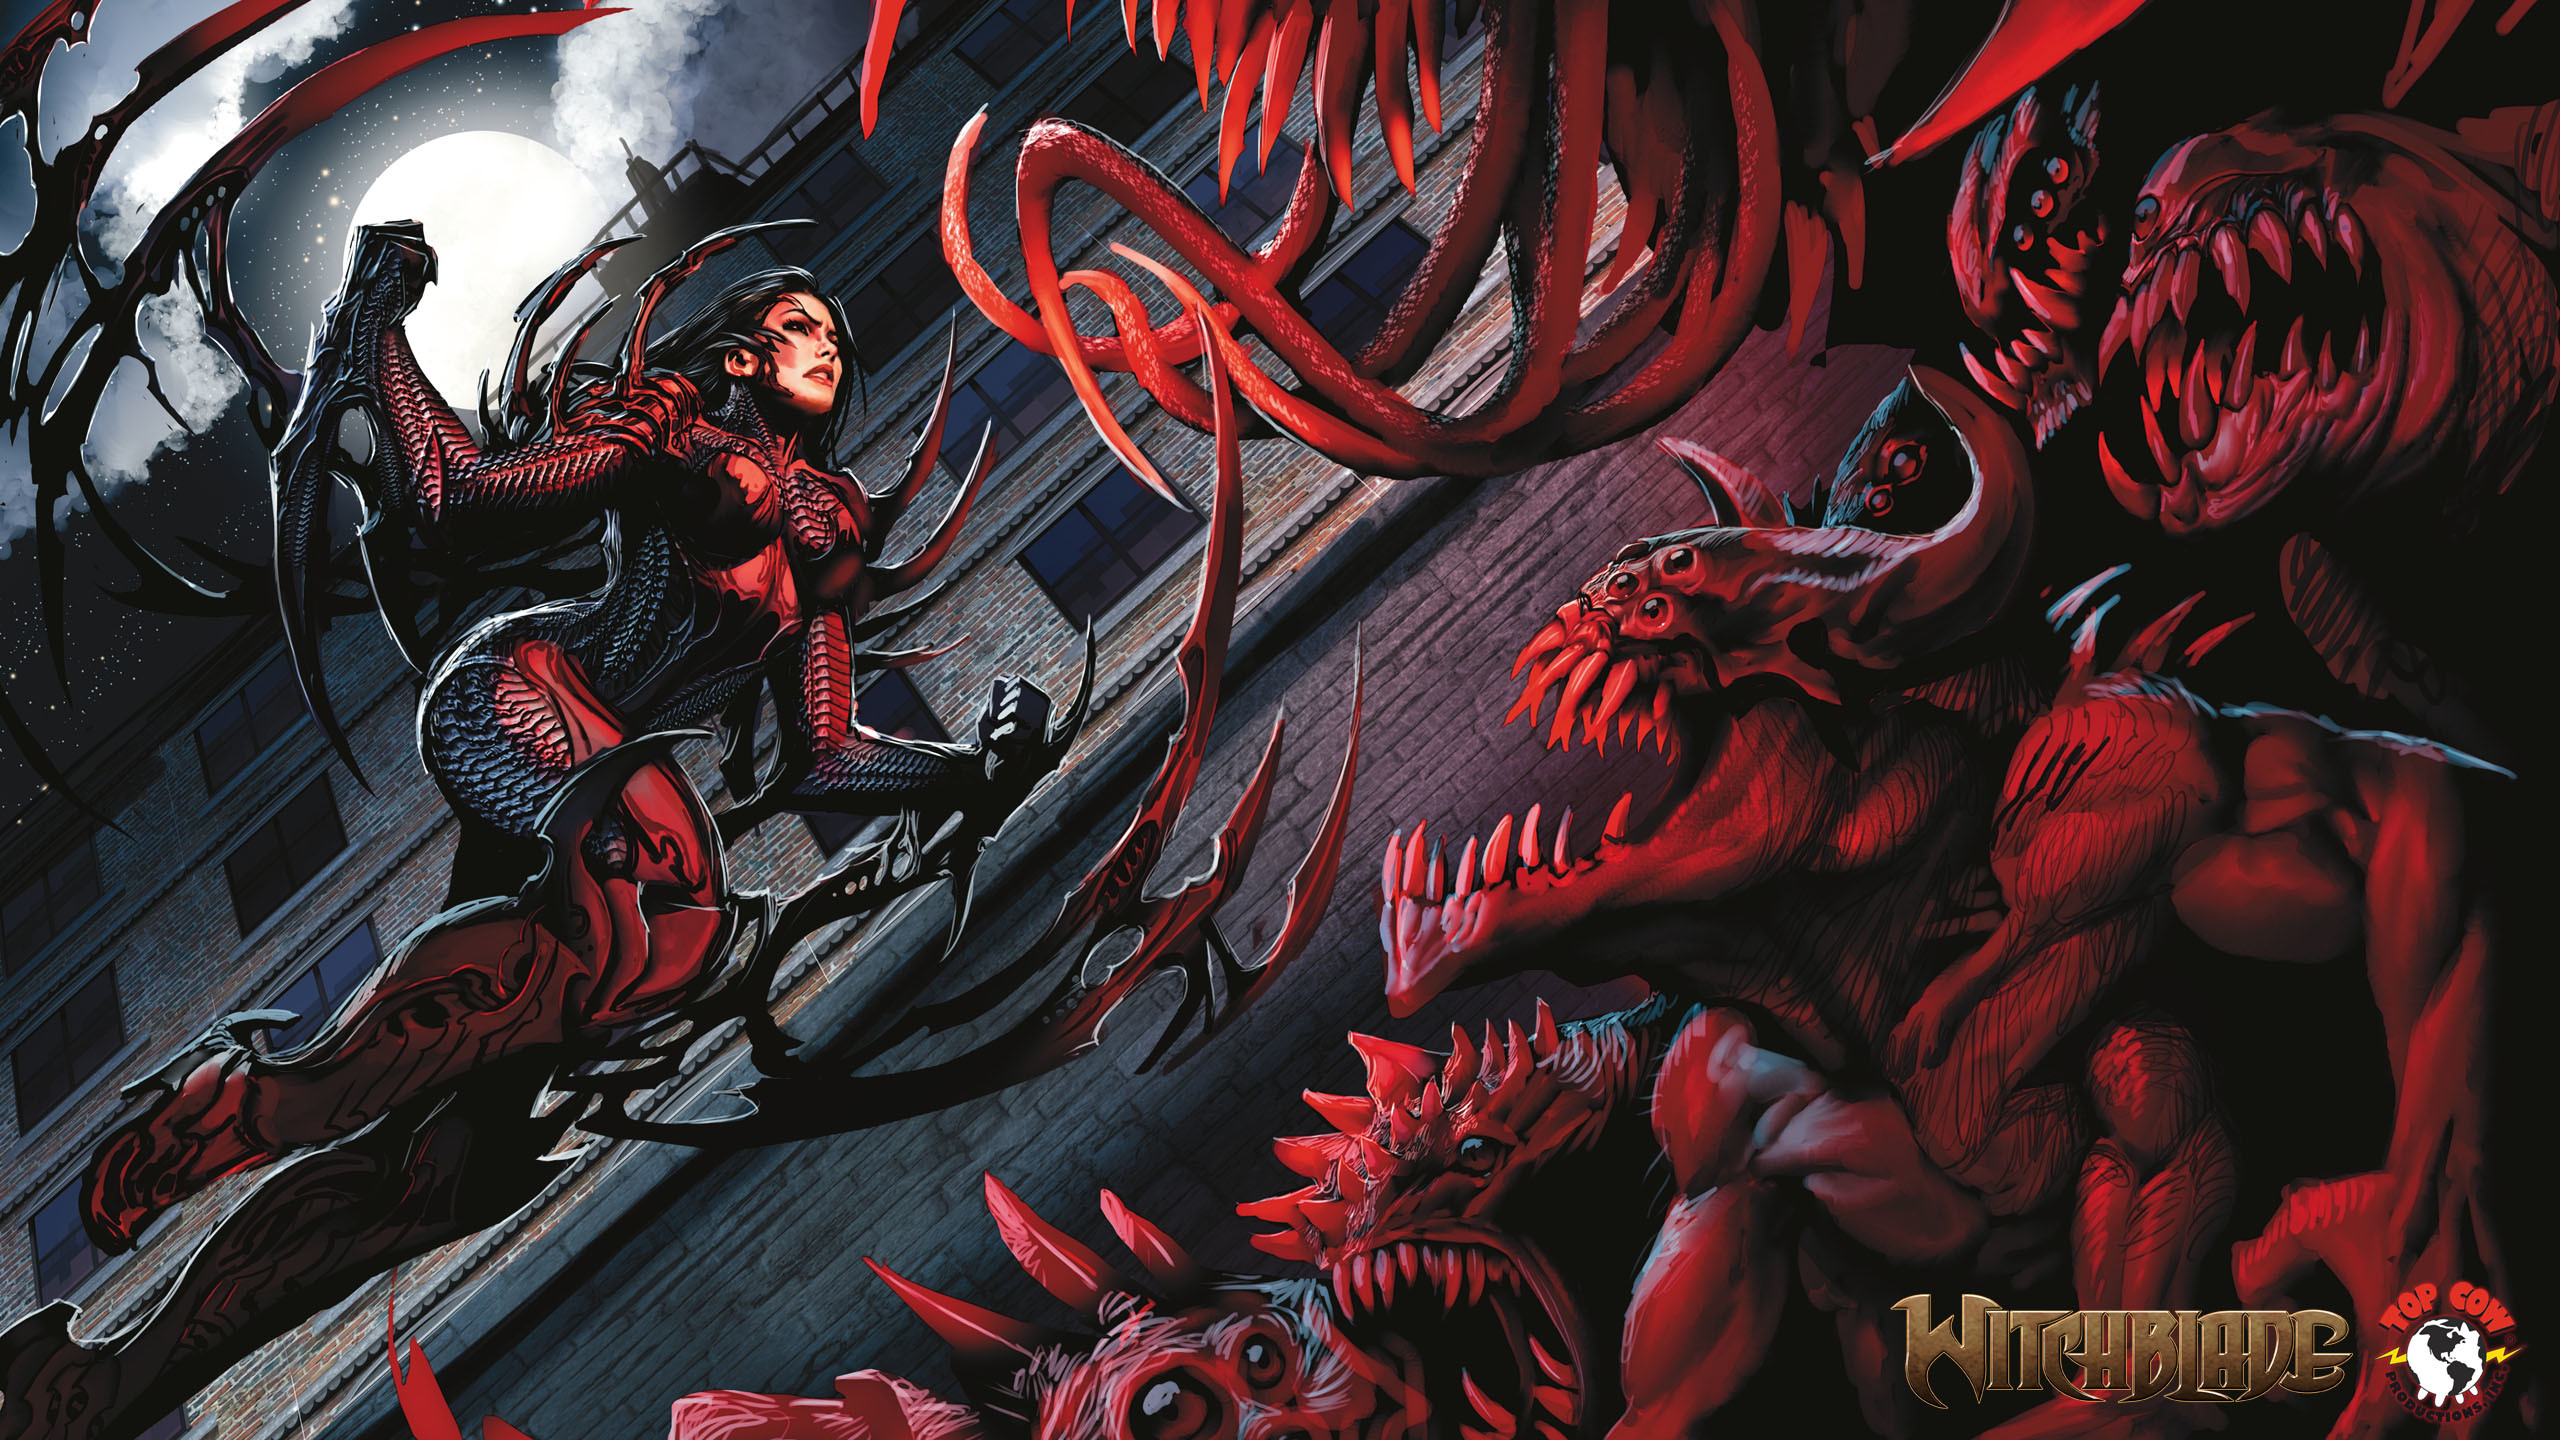 2560x1440 Comics - Witchblade Wallpaper